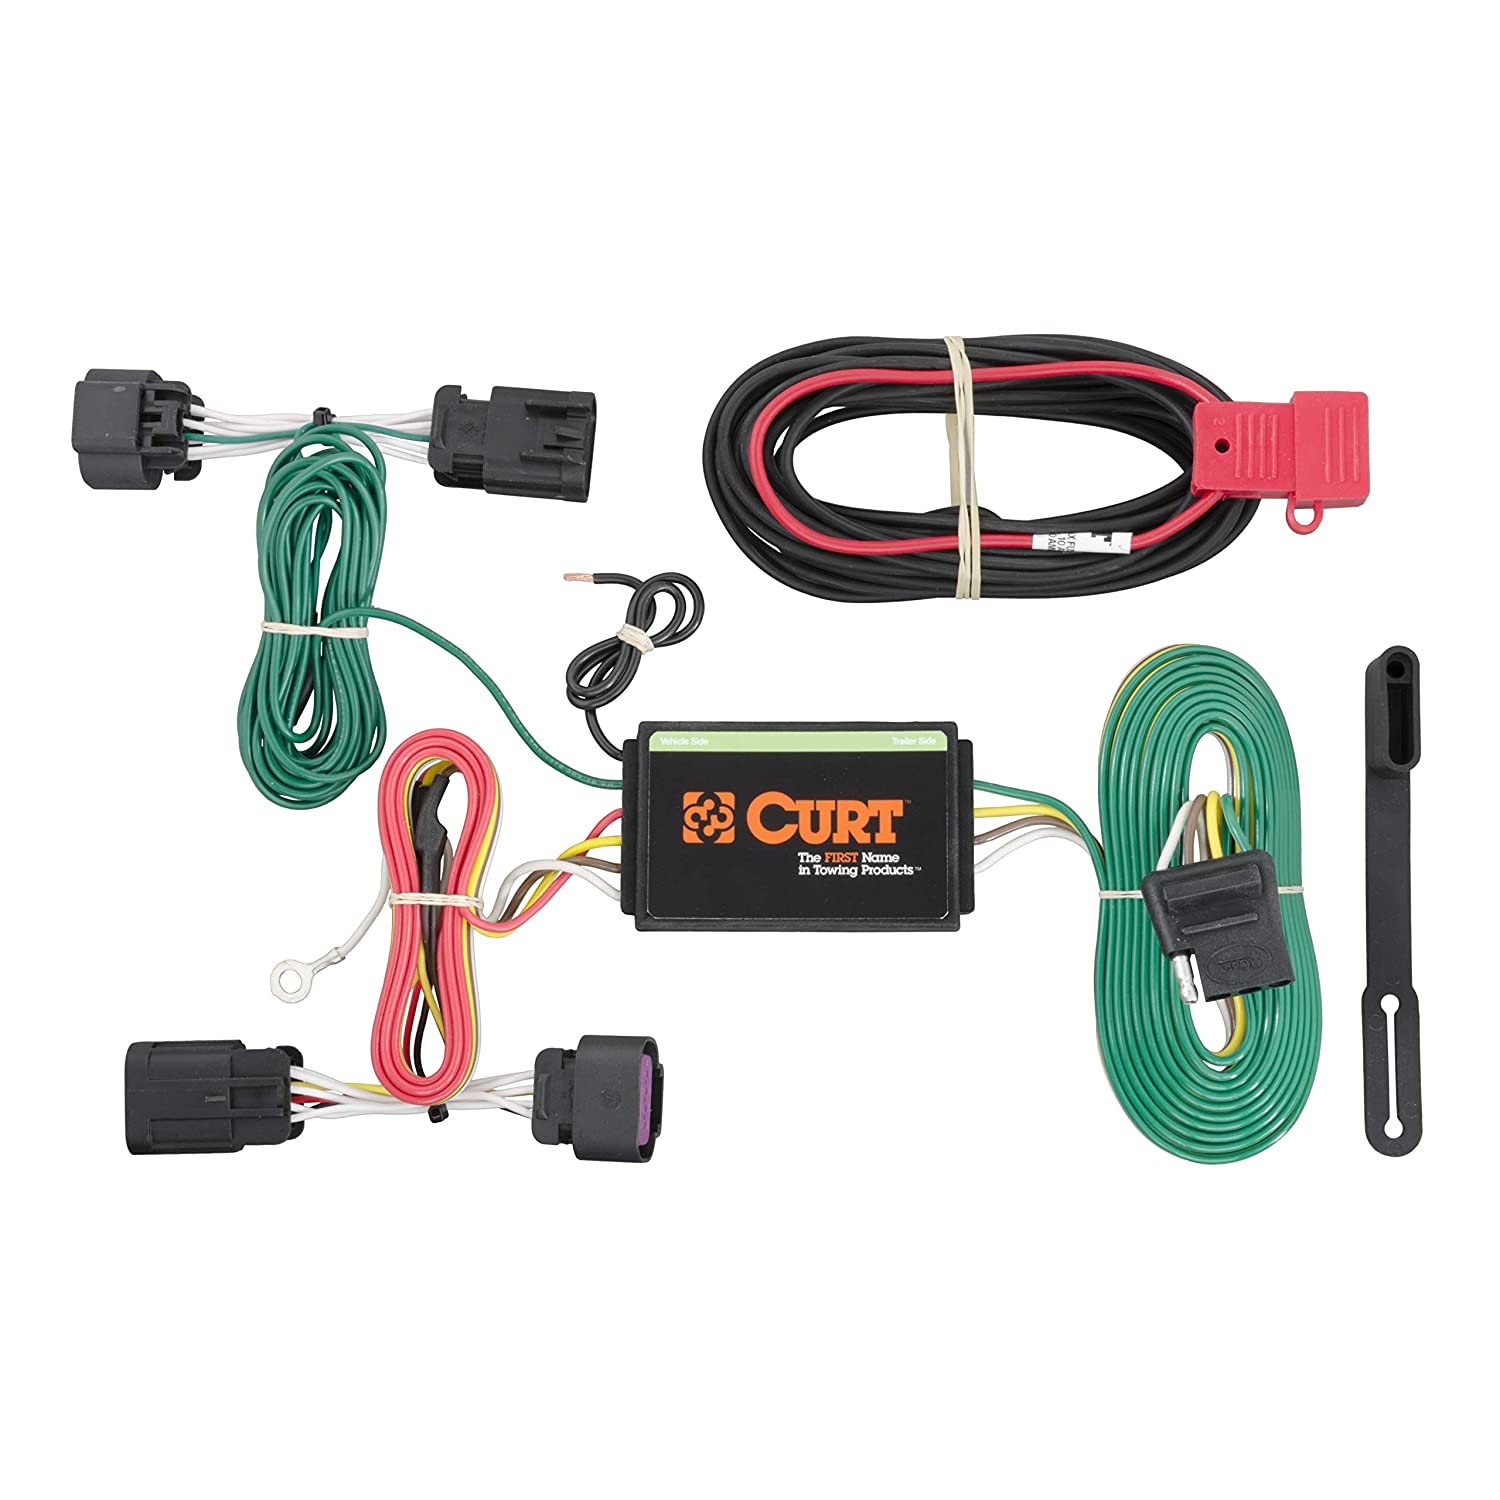 Curt Wiring Products Also With Curt T Connector Vehicle Wiring ... on t connector for trailer lights, t connector fuel line, t connector hose, t connector battery, t one wiring harness, t connector electrical, 1998 ford f-150 tow harness,